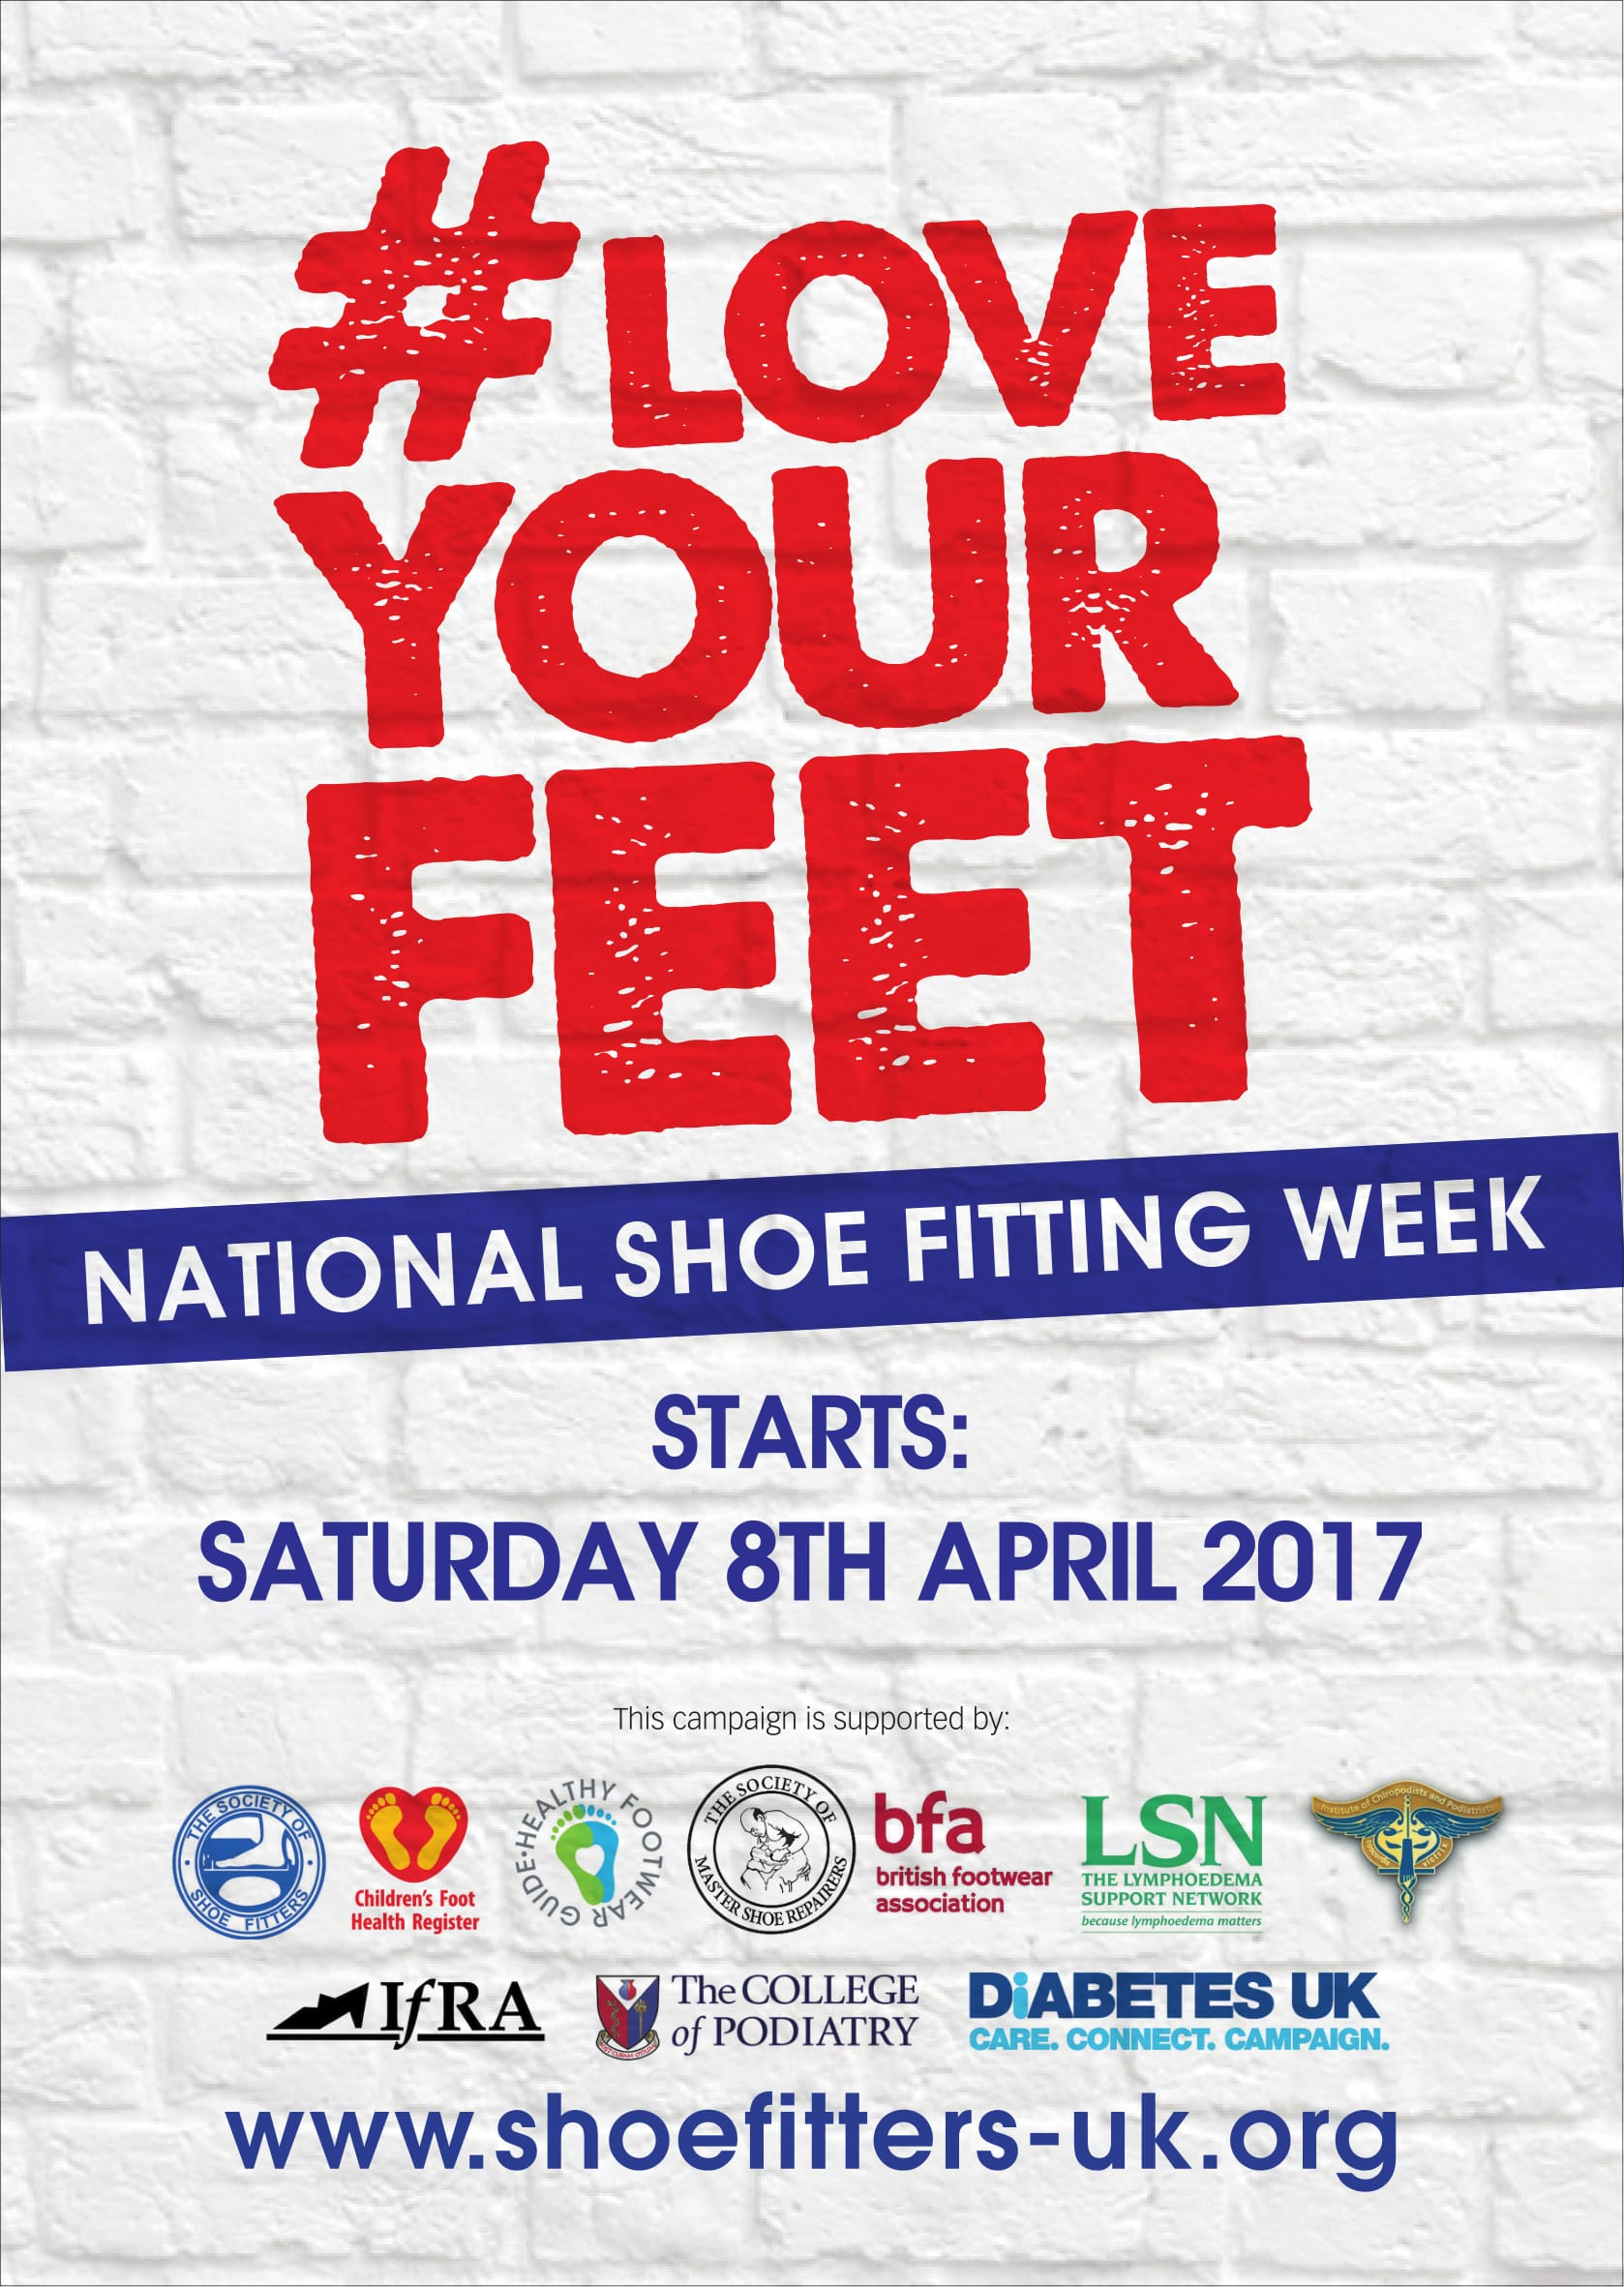 National Shoe Fitting Week